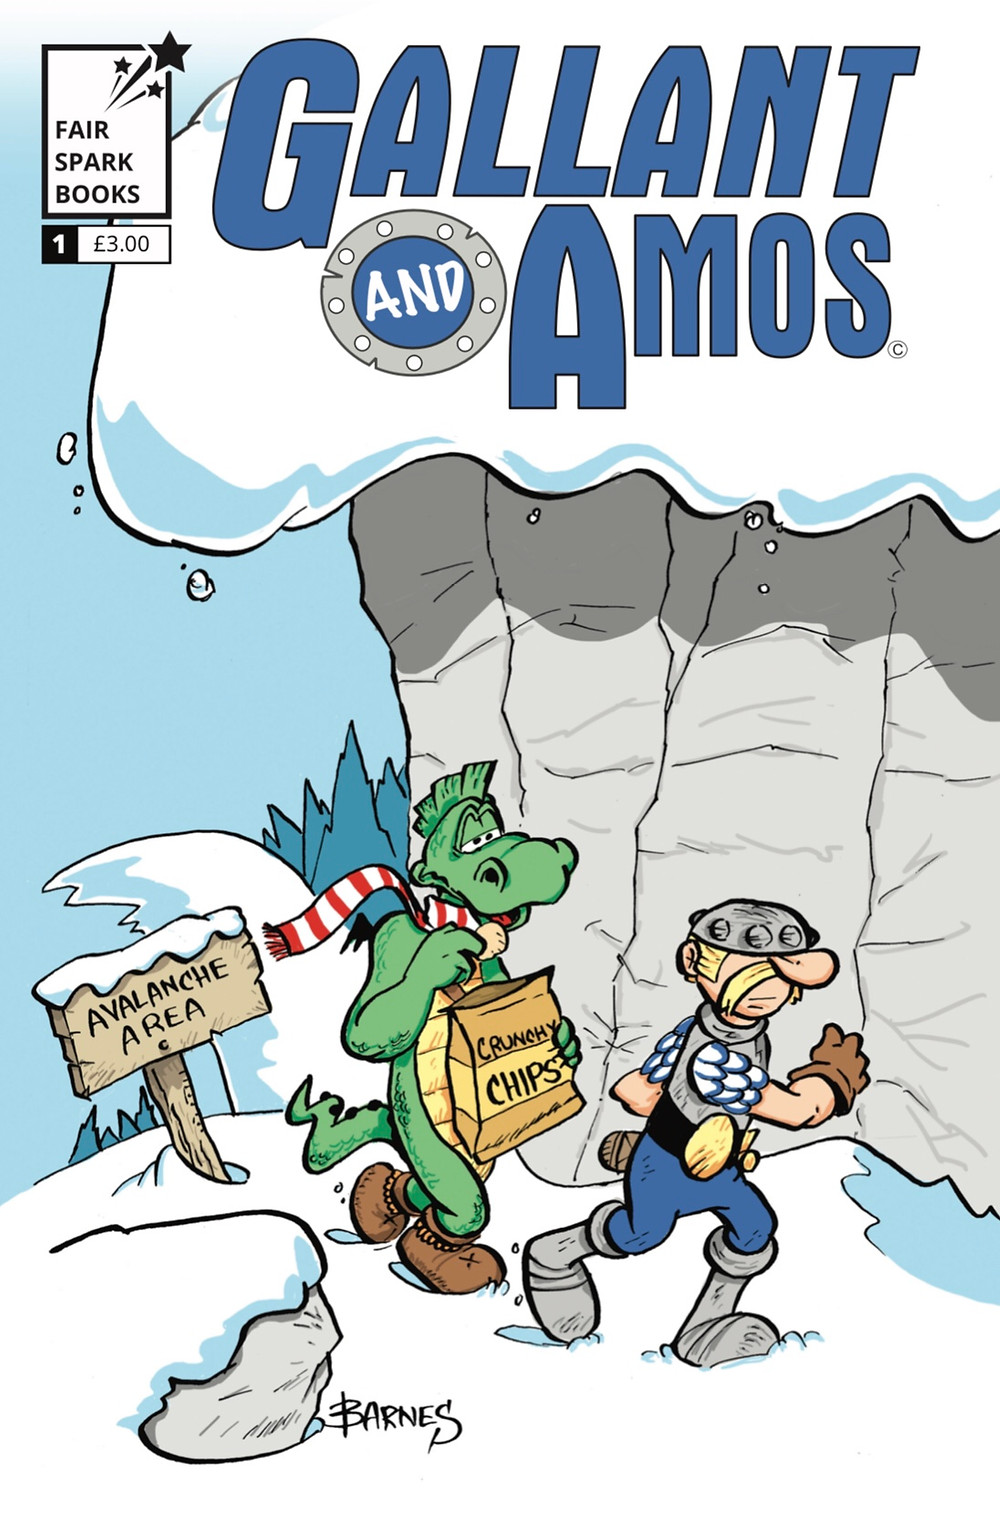 Gallant & Amos, issue 1, cover, Fair Spark Books, Barnes